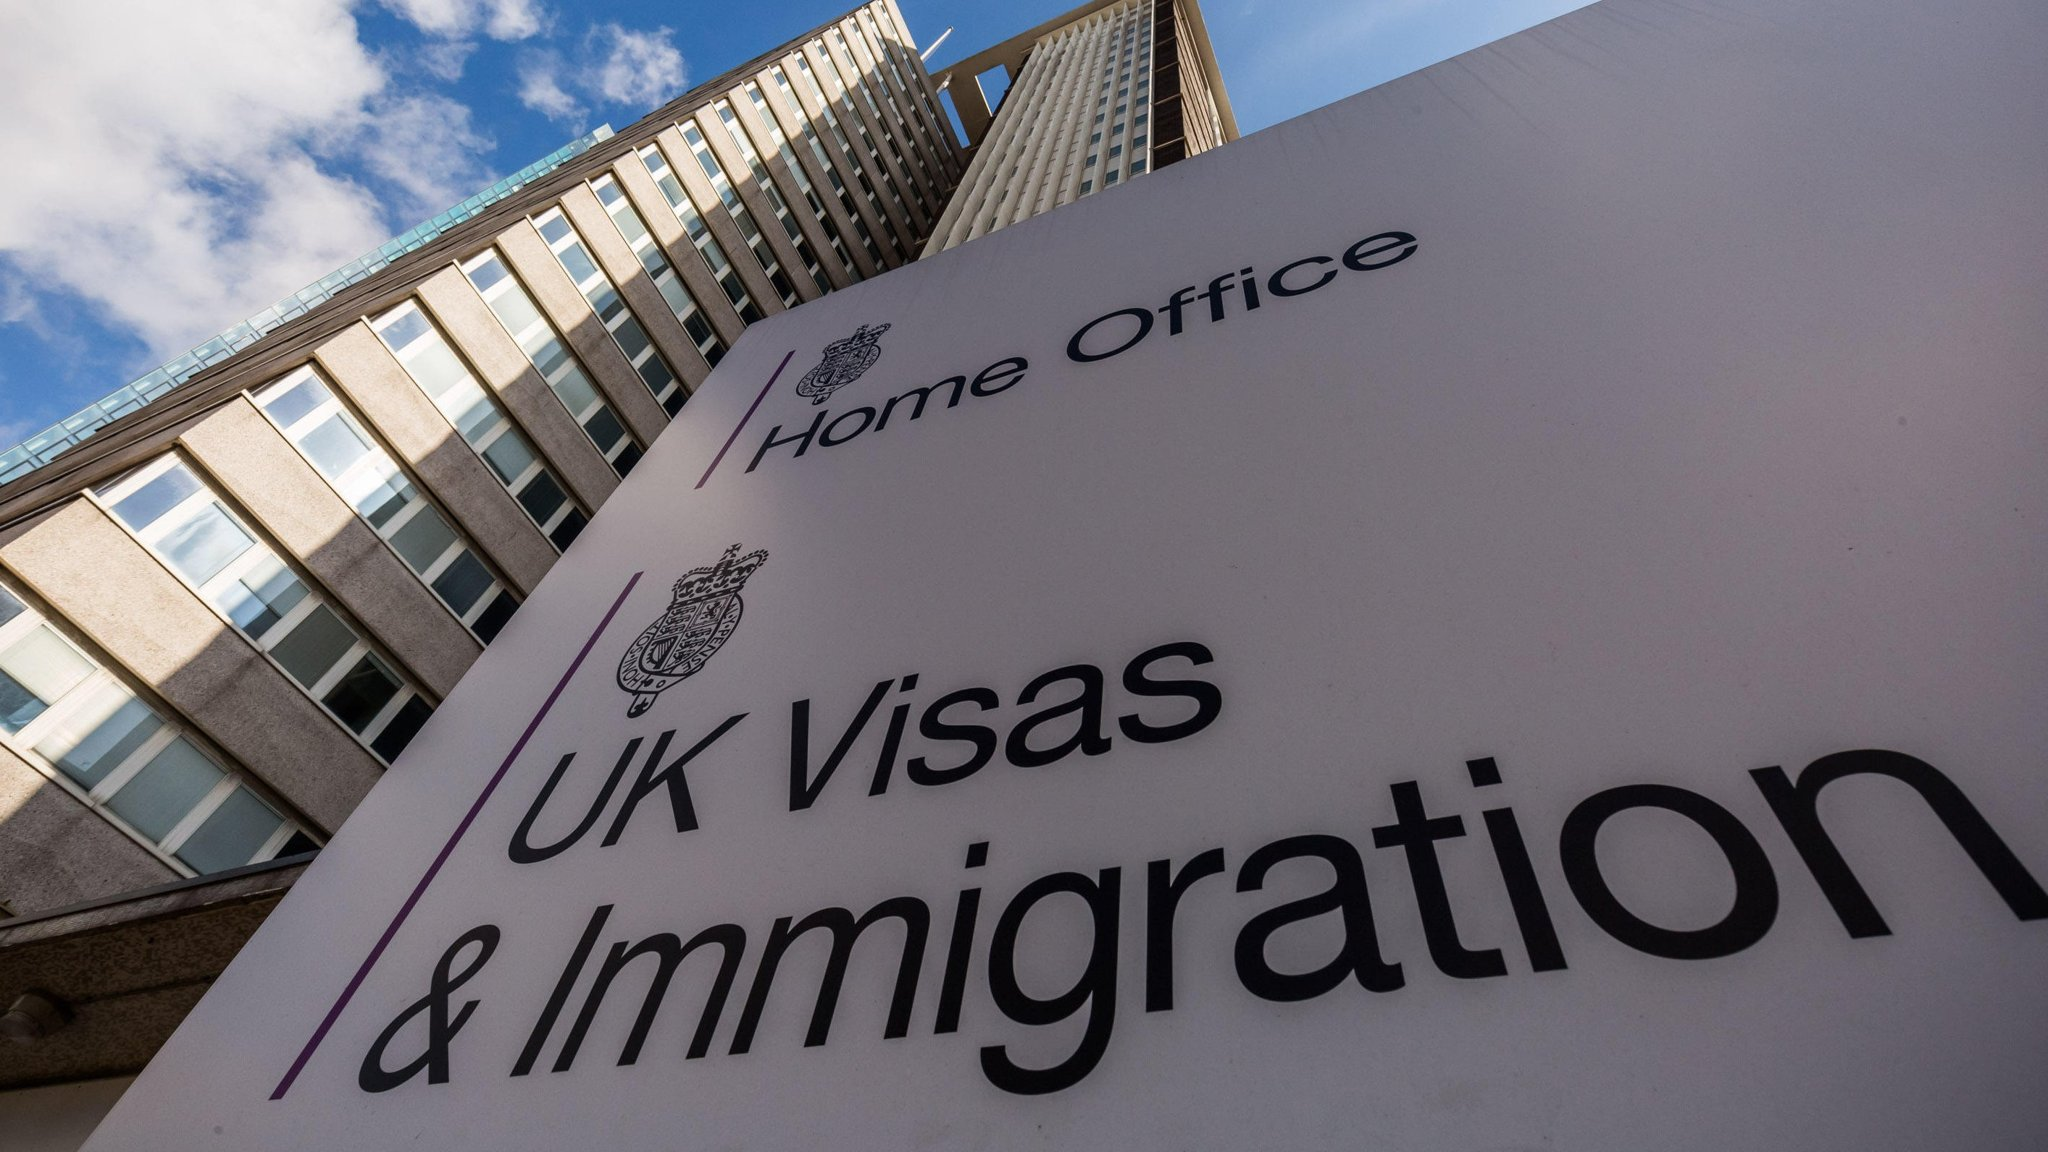 Home Office introduces new improved online services for UK